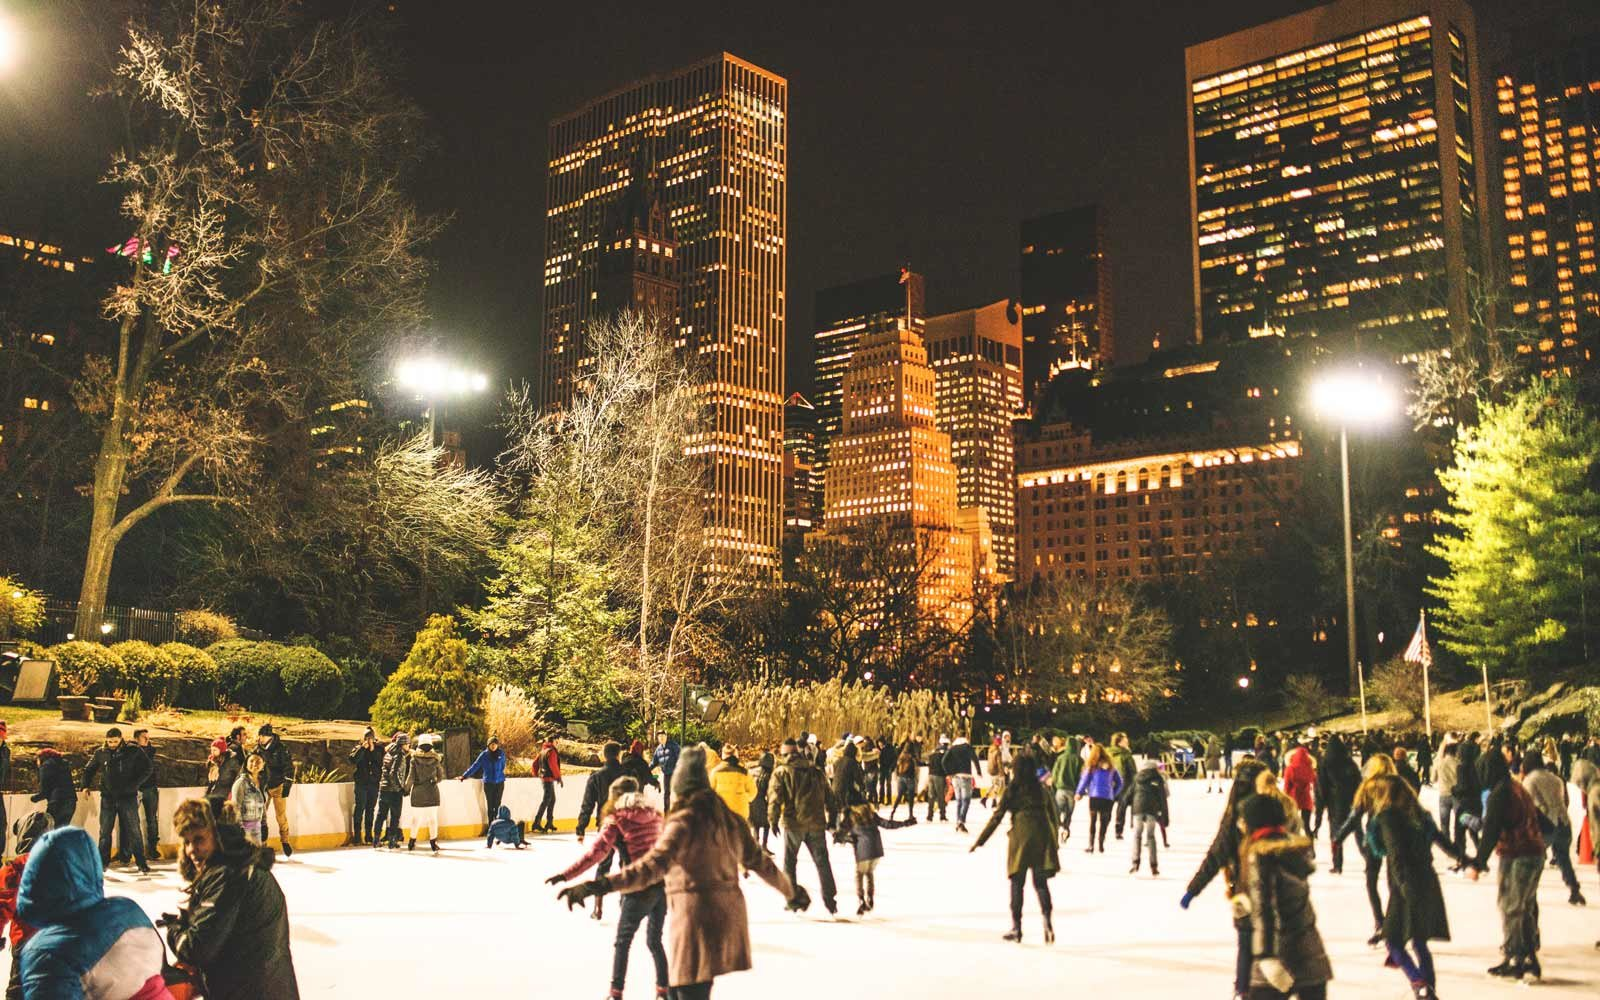 new-york-central-park-ice-skating-LEAD-WINTERCITIES1218.jpg